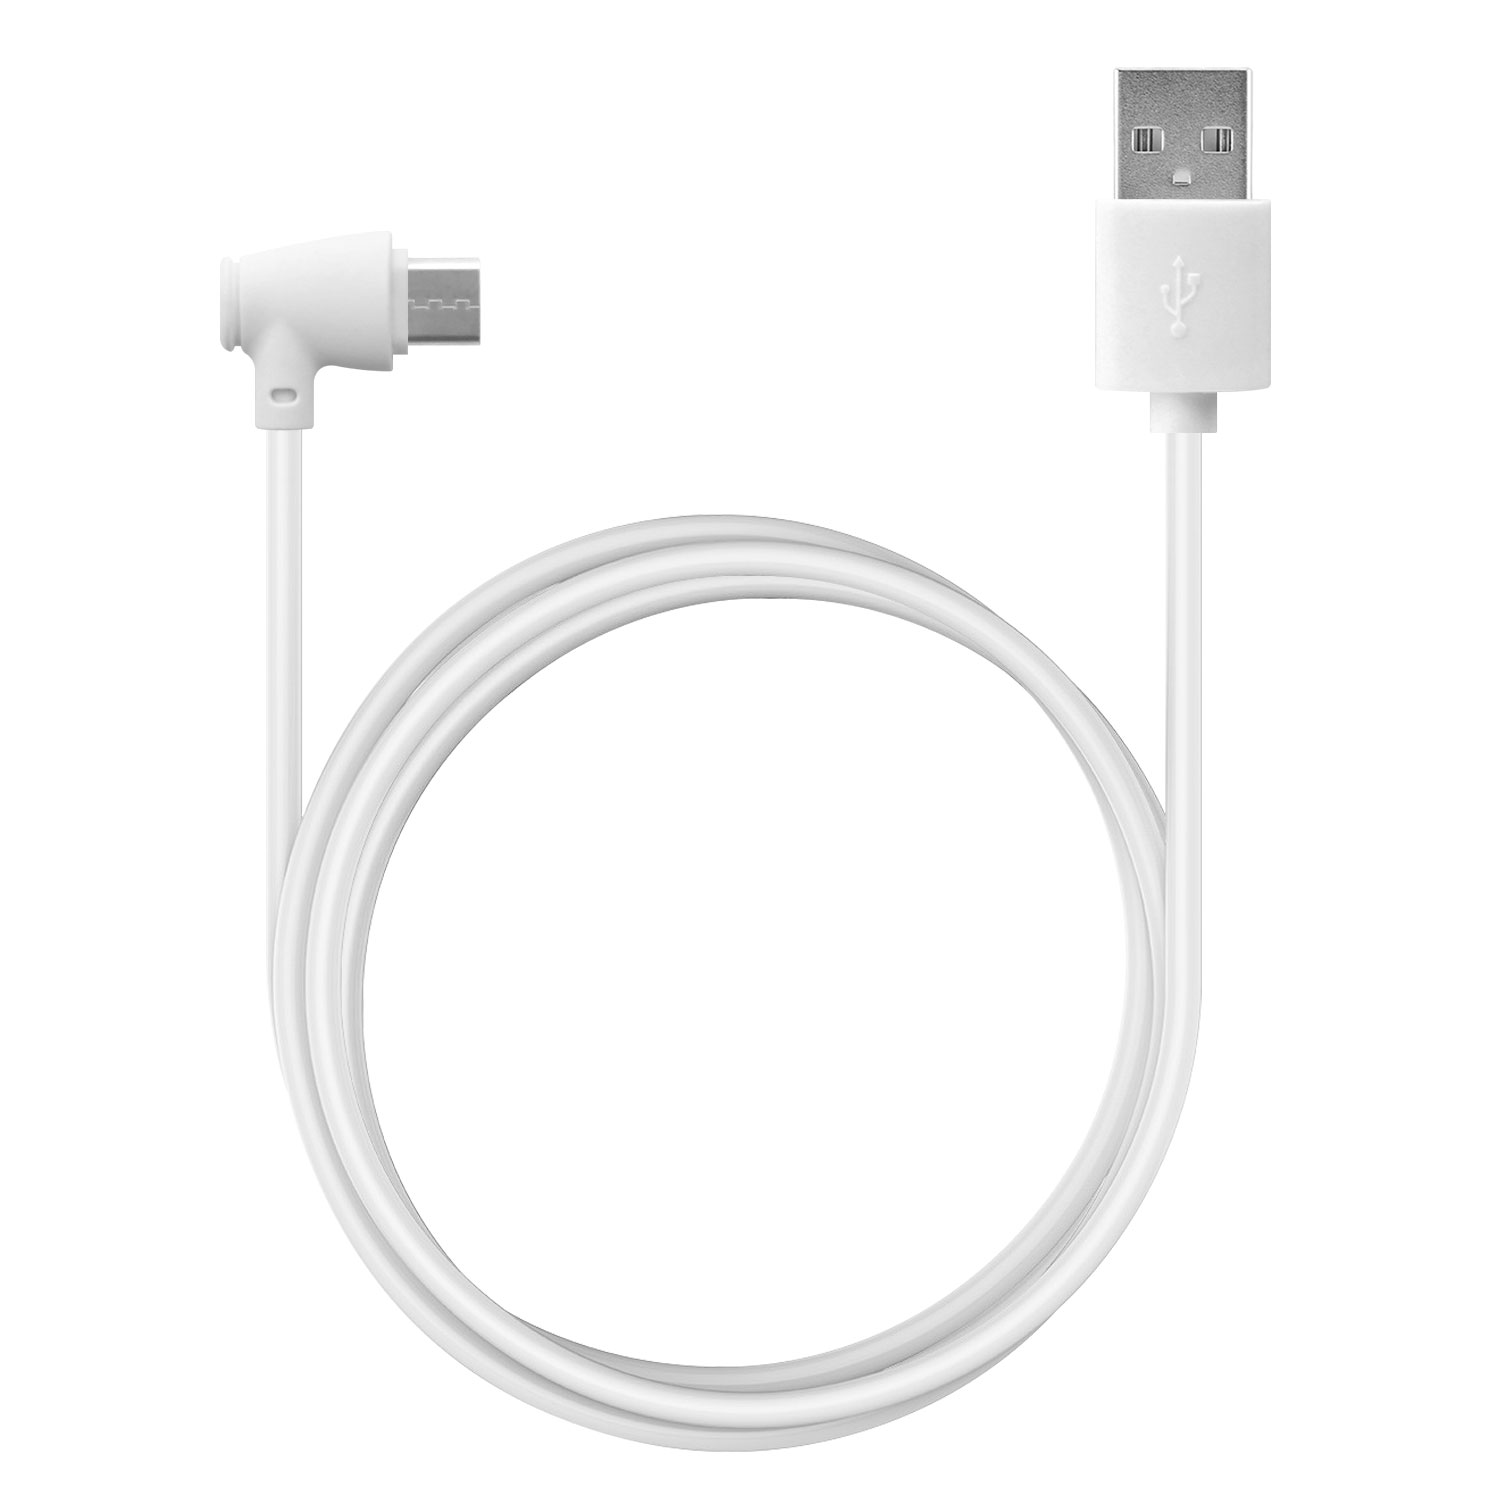 ZTE Axon M USB Type-C To USB Type-A Data Charging Cable White 3.3ft Angled